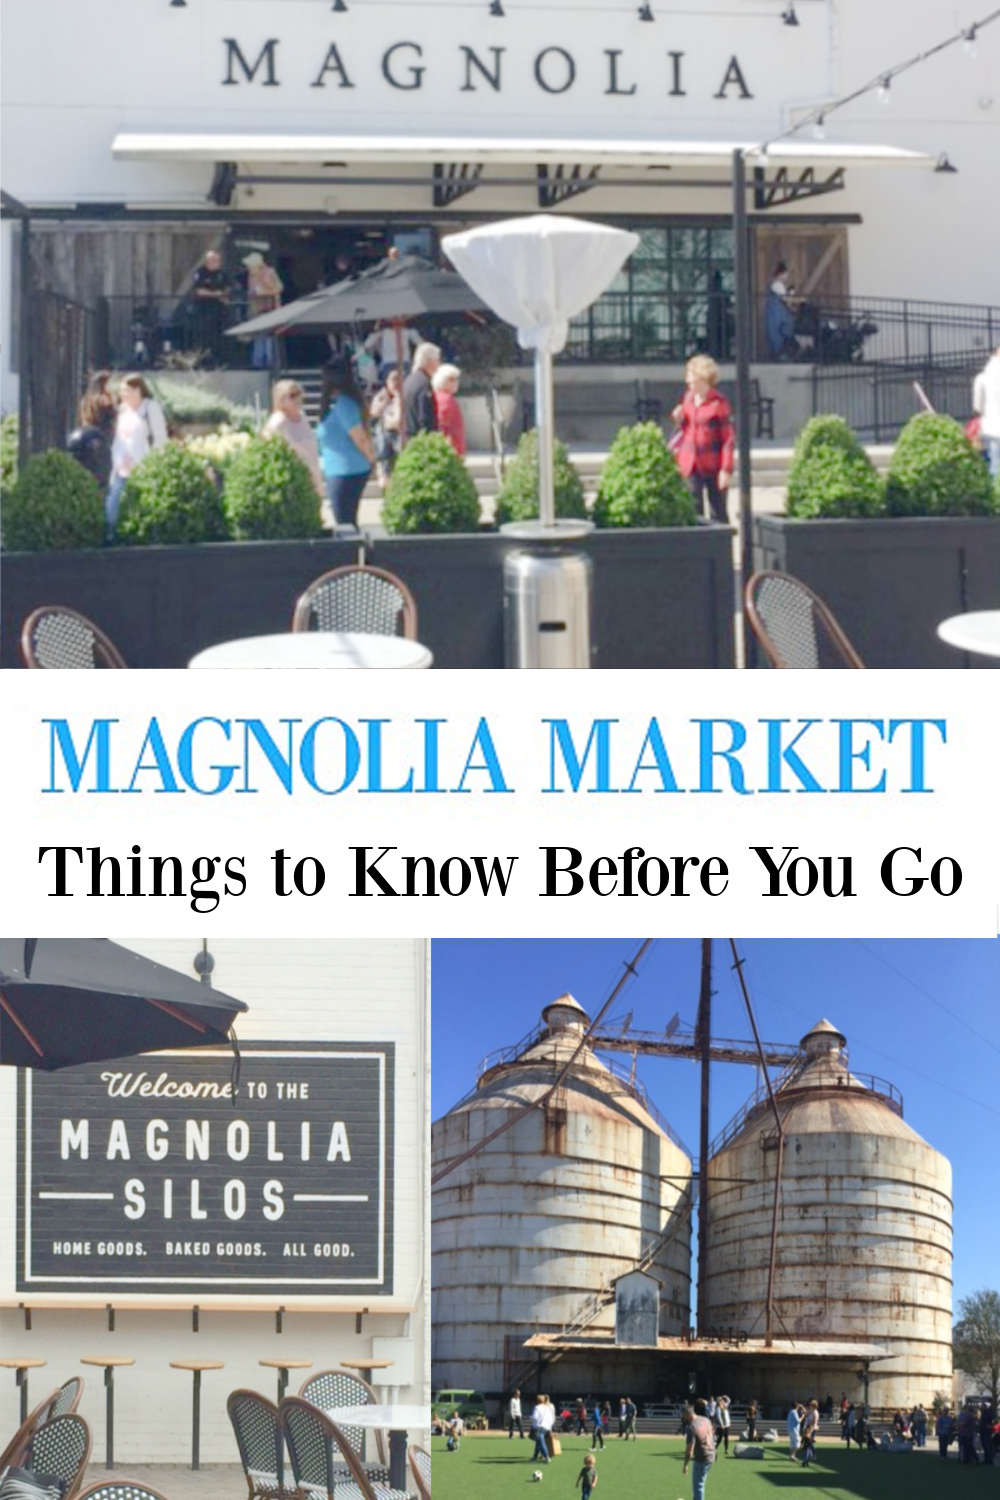 Planning a visit to Magnolia Market? Don't miss 22 Things to know before you go! #magnoliamarket #silos #waco